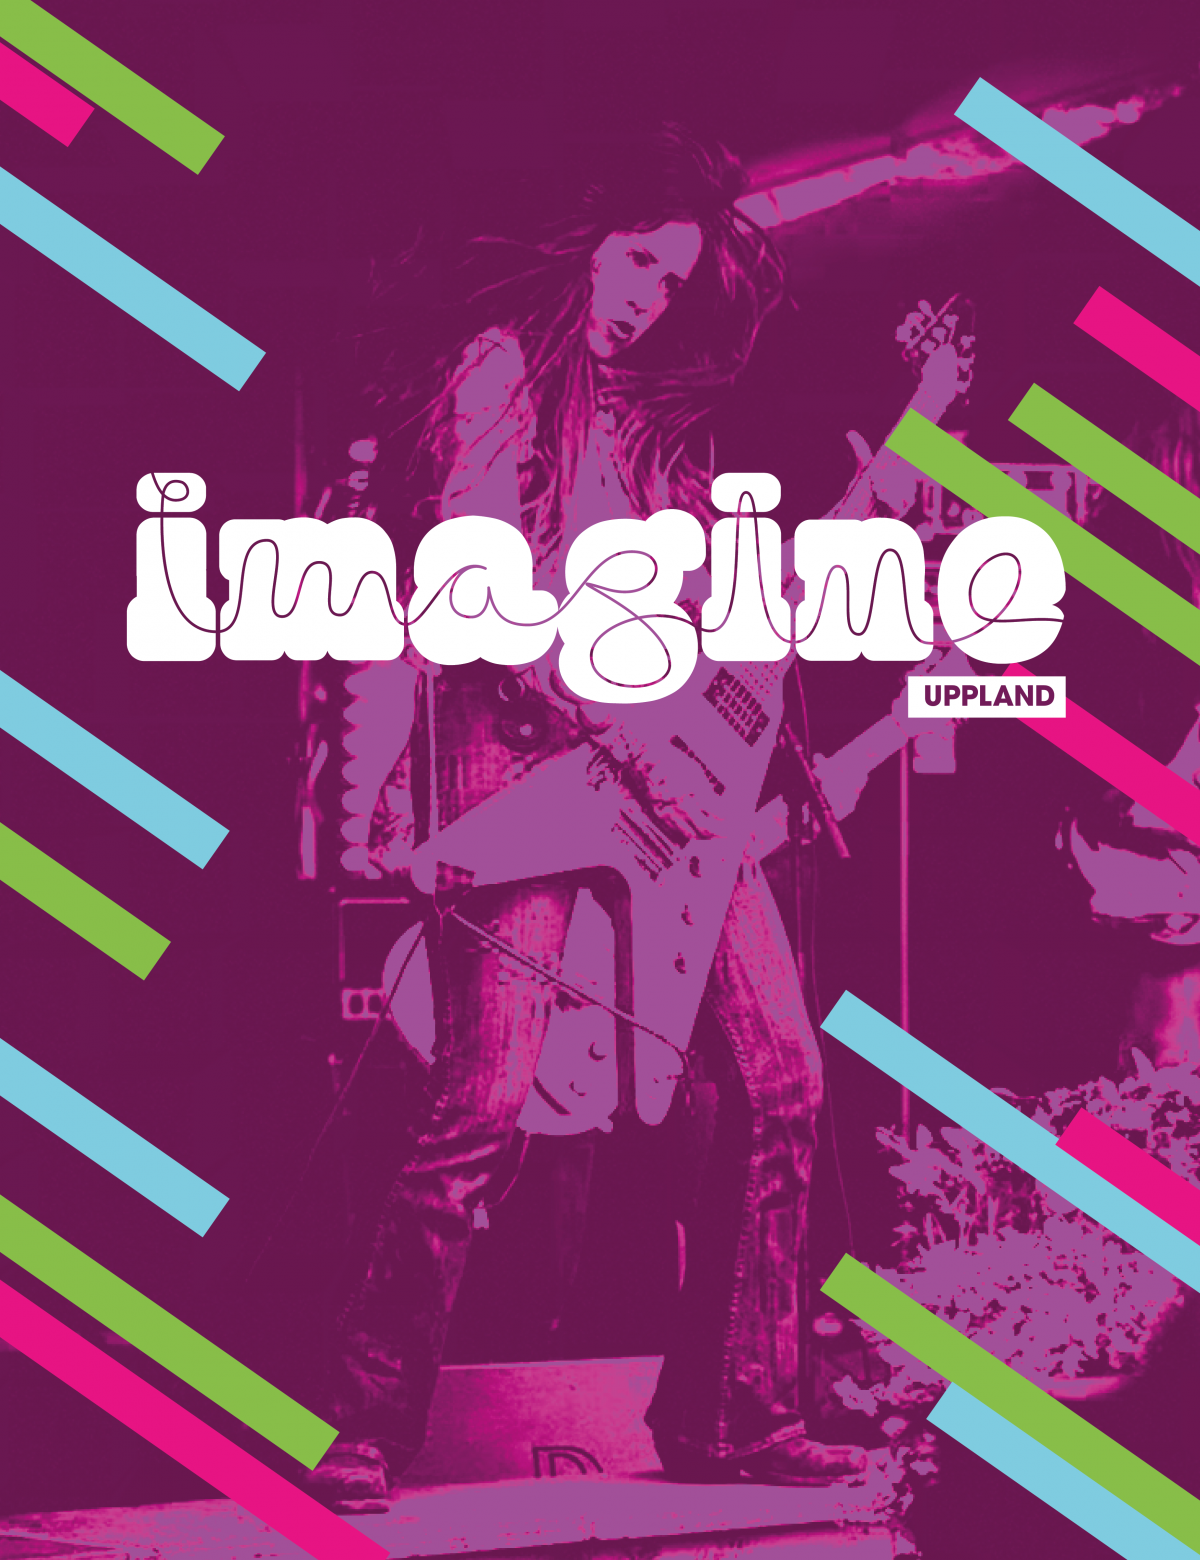 Imagine Uppland 2019